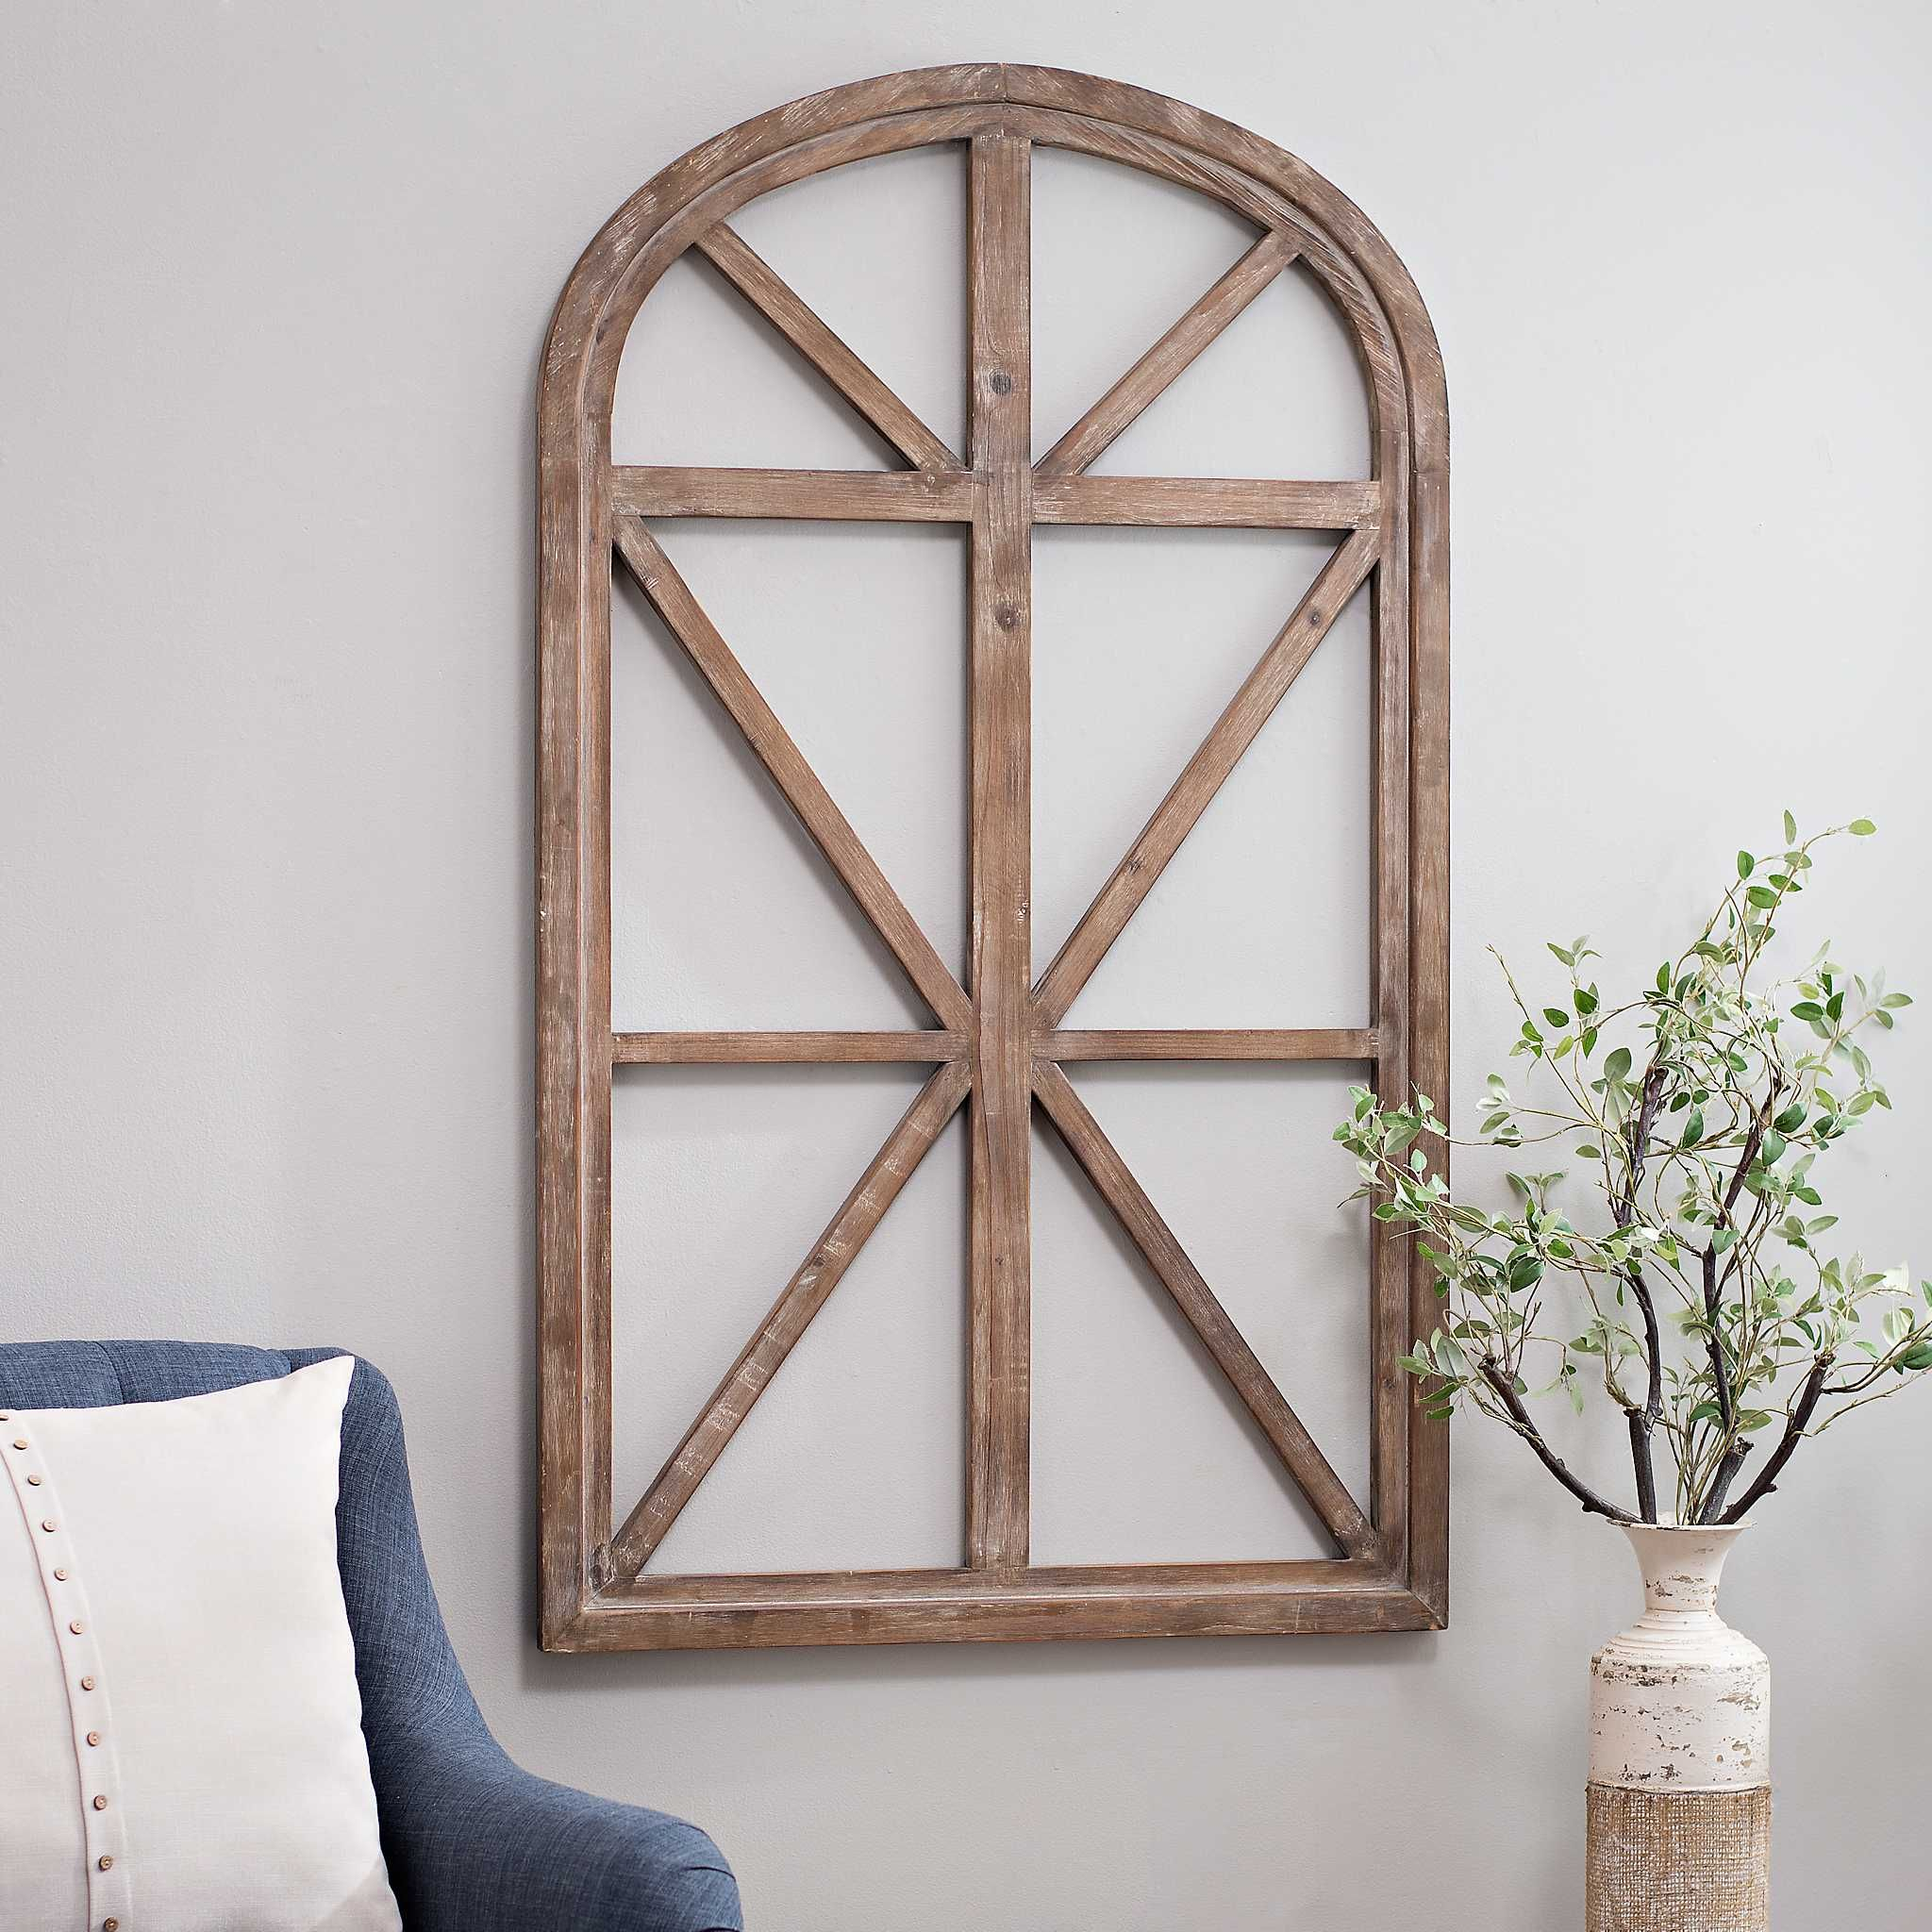 Natural Arch Door Frame Plaque Kirklands Arched Wall Decor Arched Doors Modern Farmhouse Decor